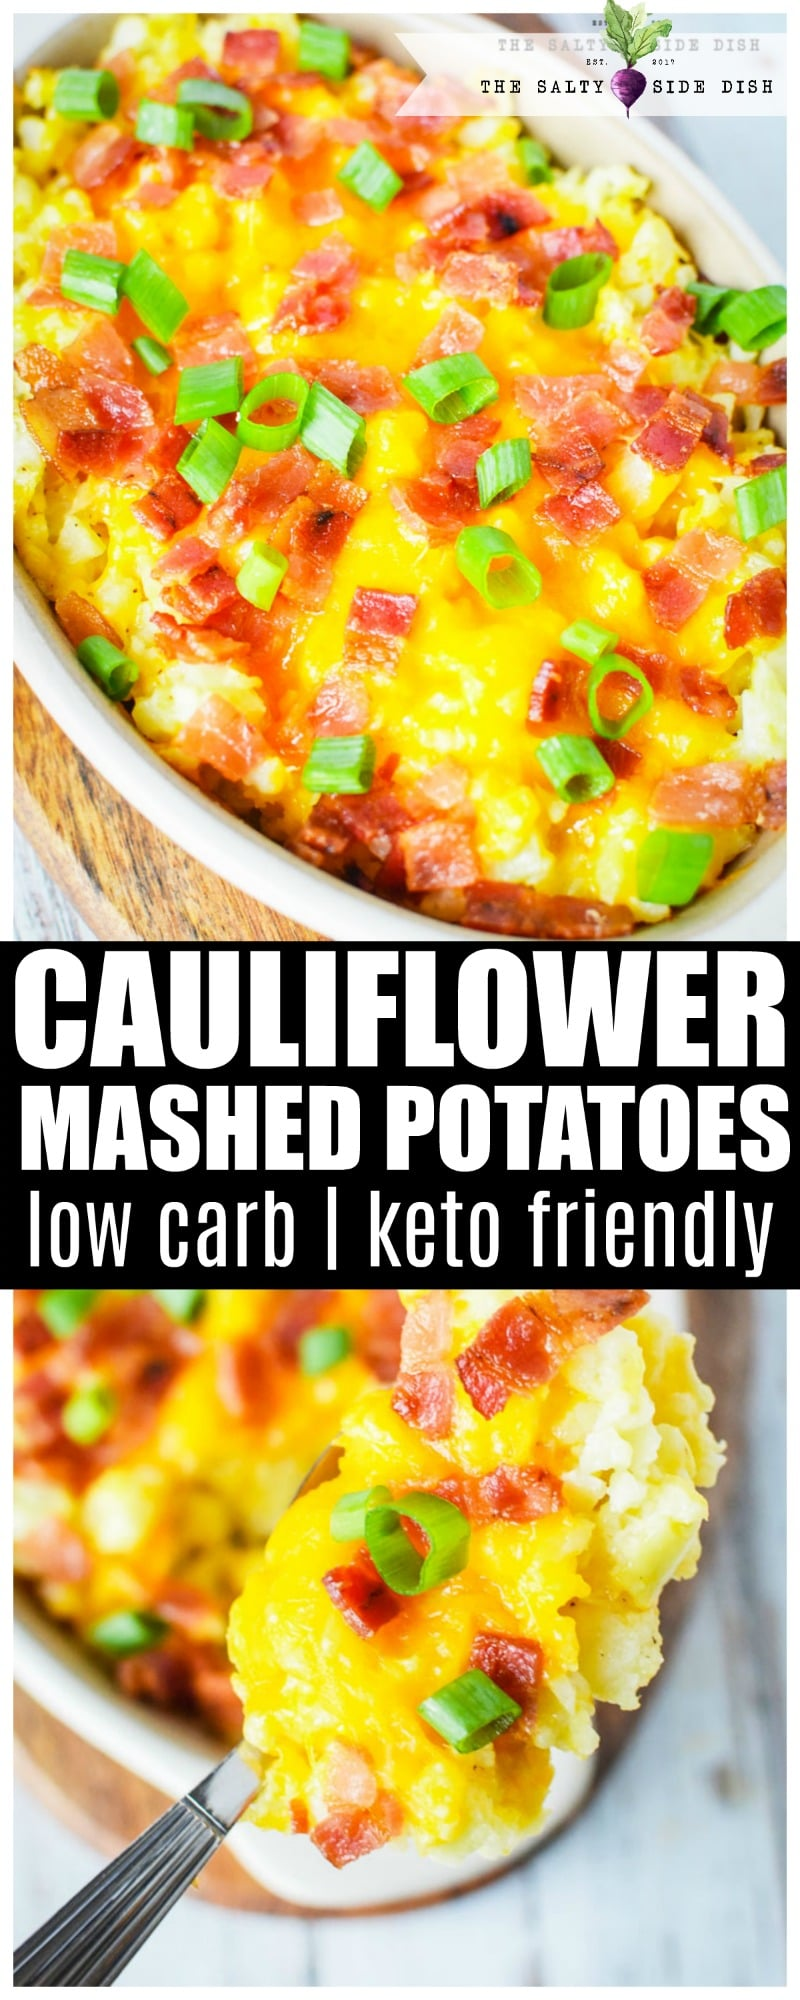 "Cauliflower mashed potatoes, a healthy low carb and KETO friendly ""mocktato"" recipe #copycat #cauliflower #mashed #potatoes #sidedish #holidayeating #holidaysidedish #recipe"